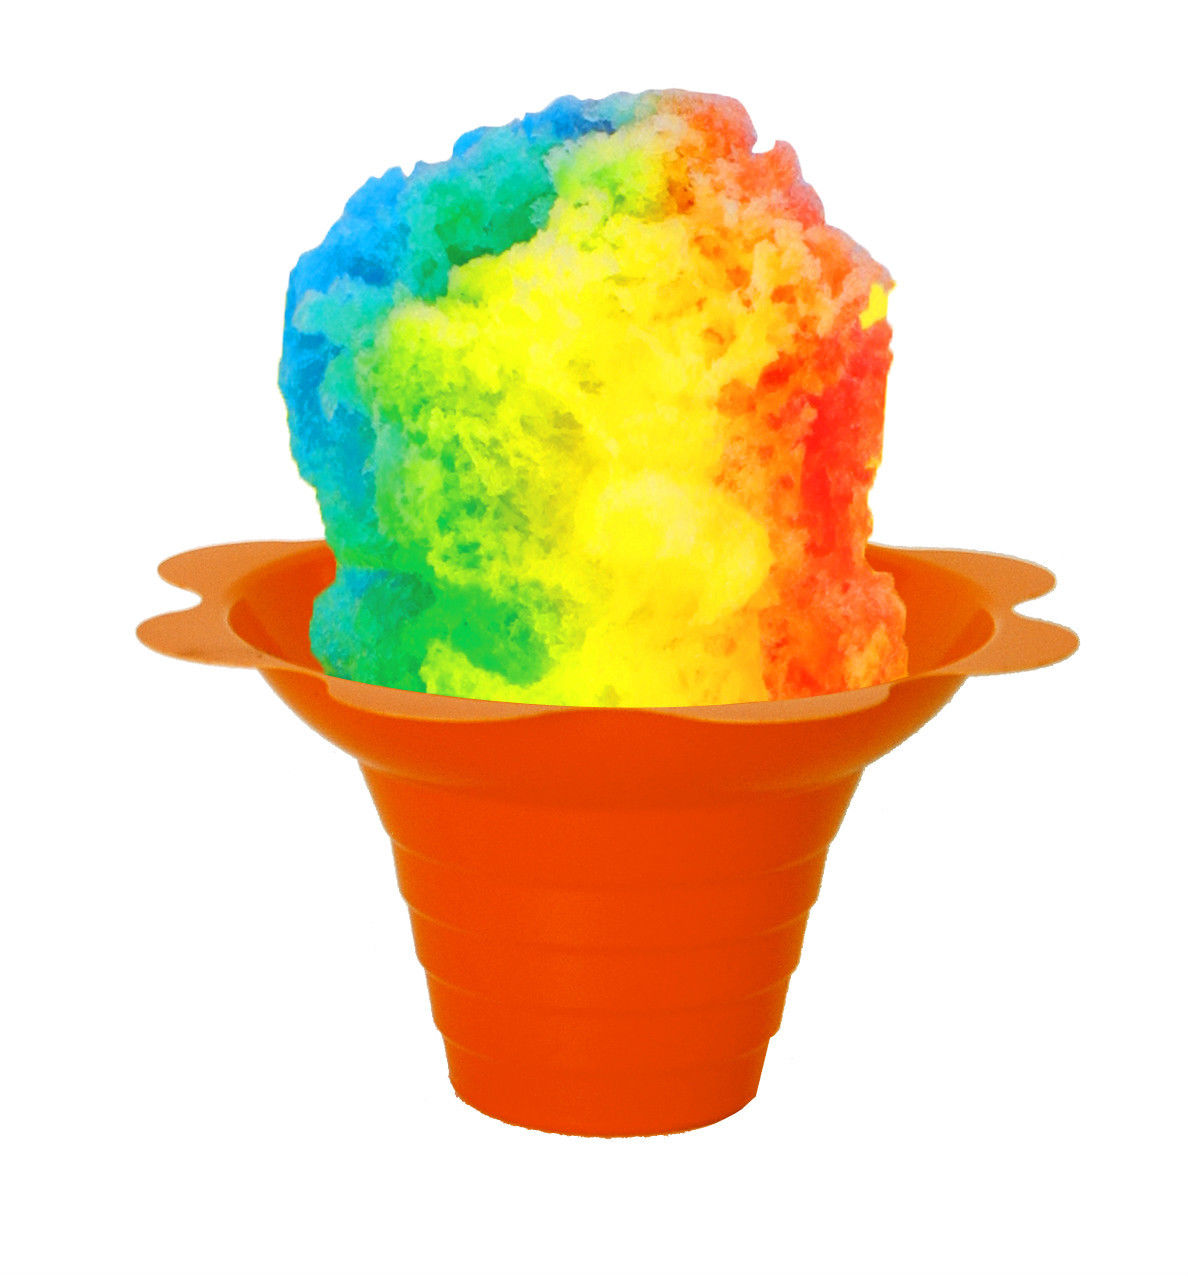 Flower Cups for Serving Shaved Ice or Snow Cones 4 oz, Case of 500